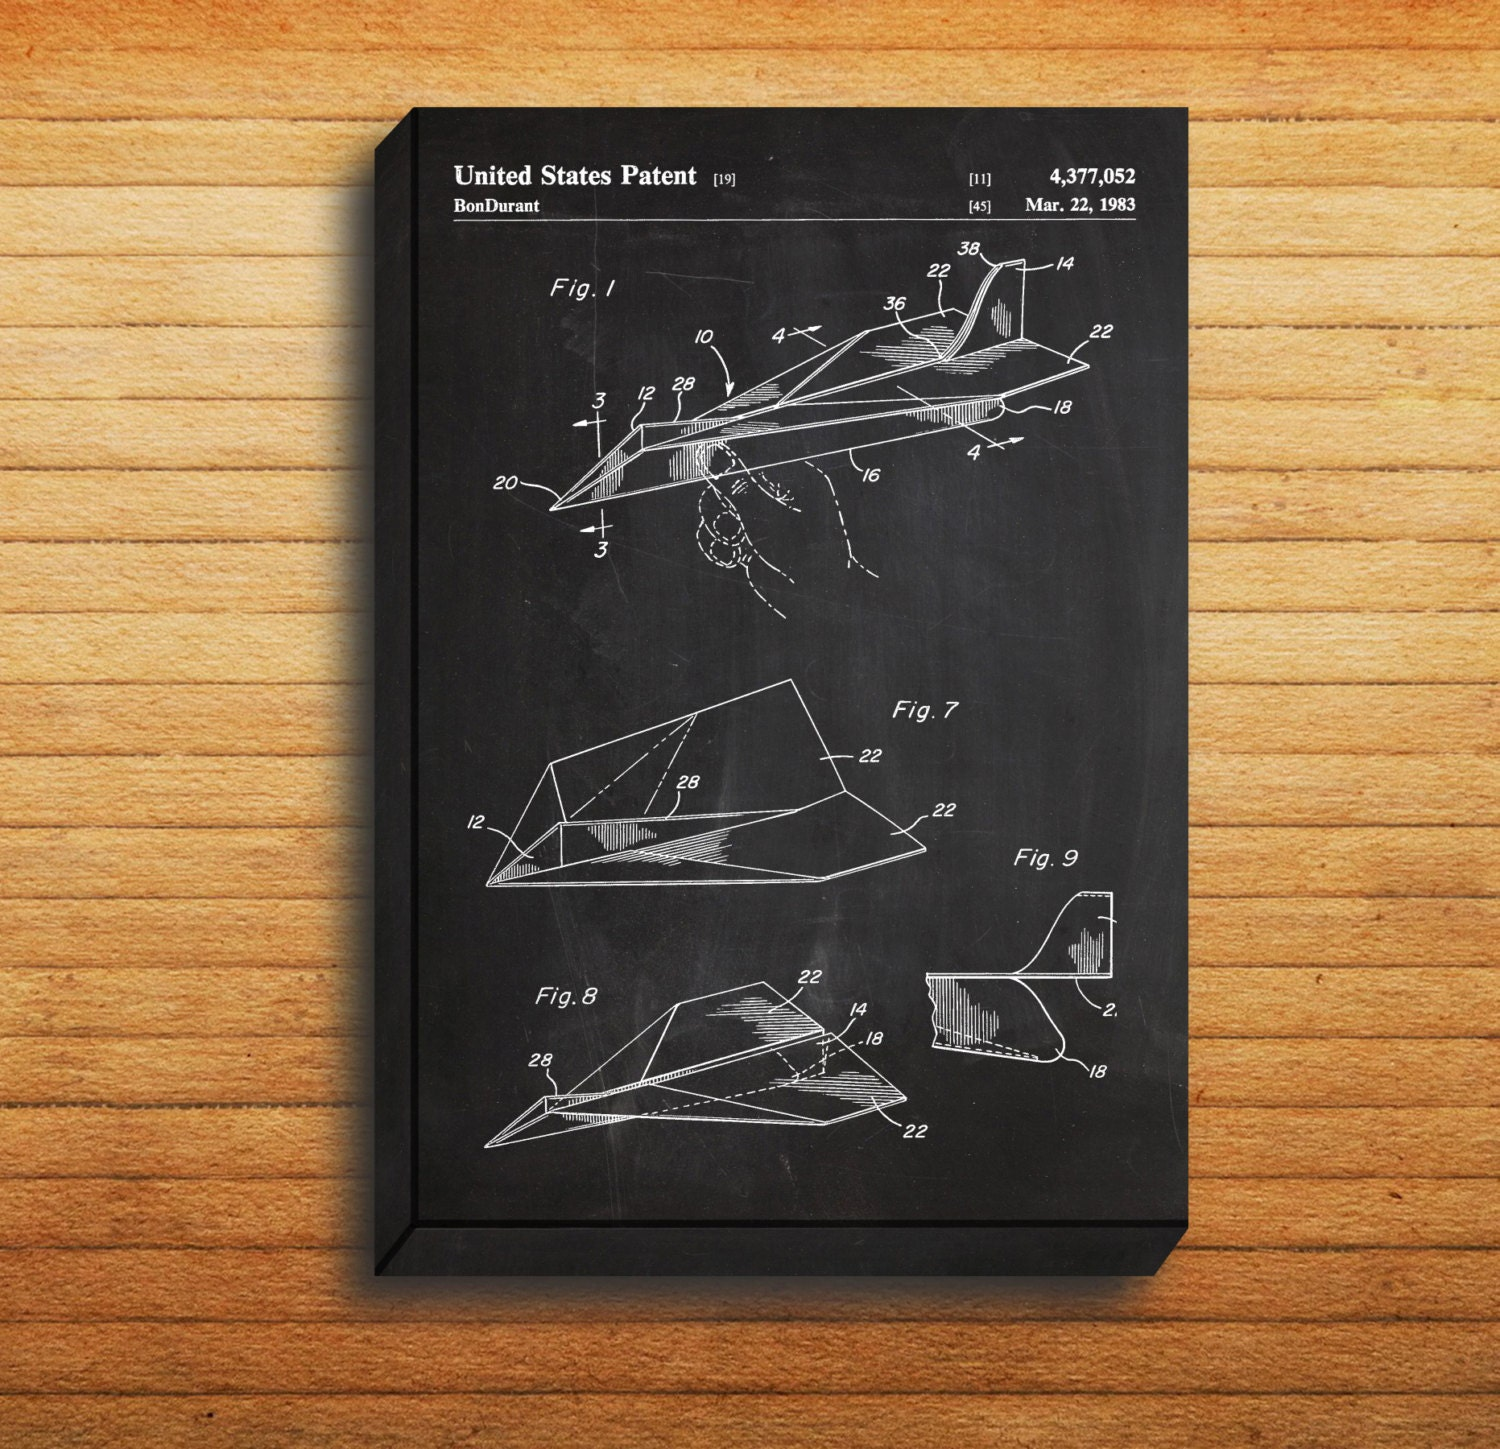 Canvas paper airplane patent paper airplane poster paper canvas paper airplane patent paper airplane poster paper airplane print paper airplane art paper airplane decor p225 malvernweather Image collections